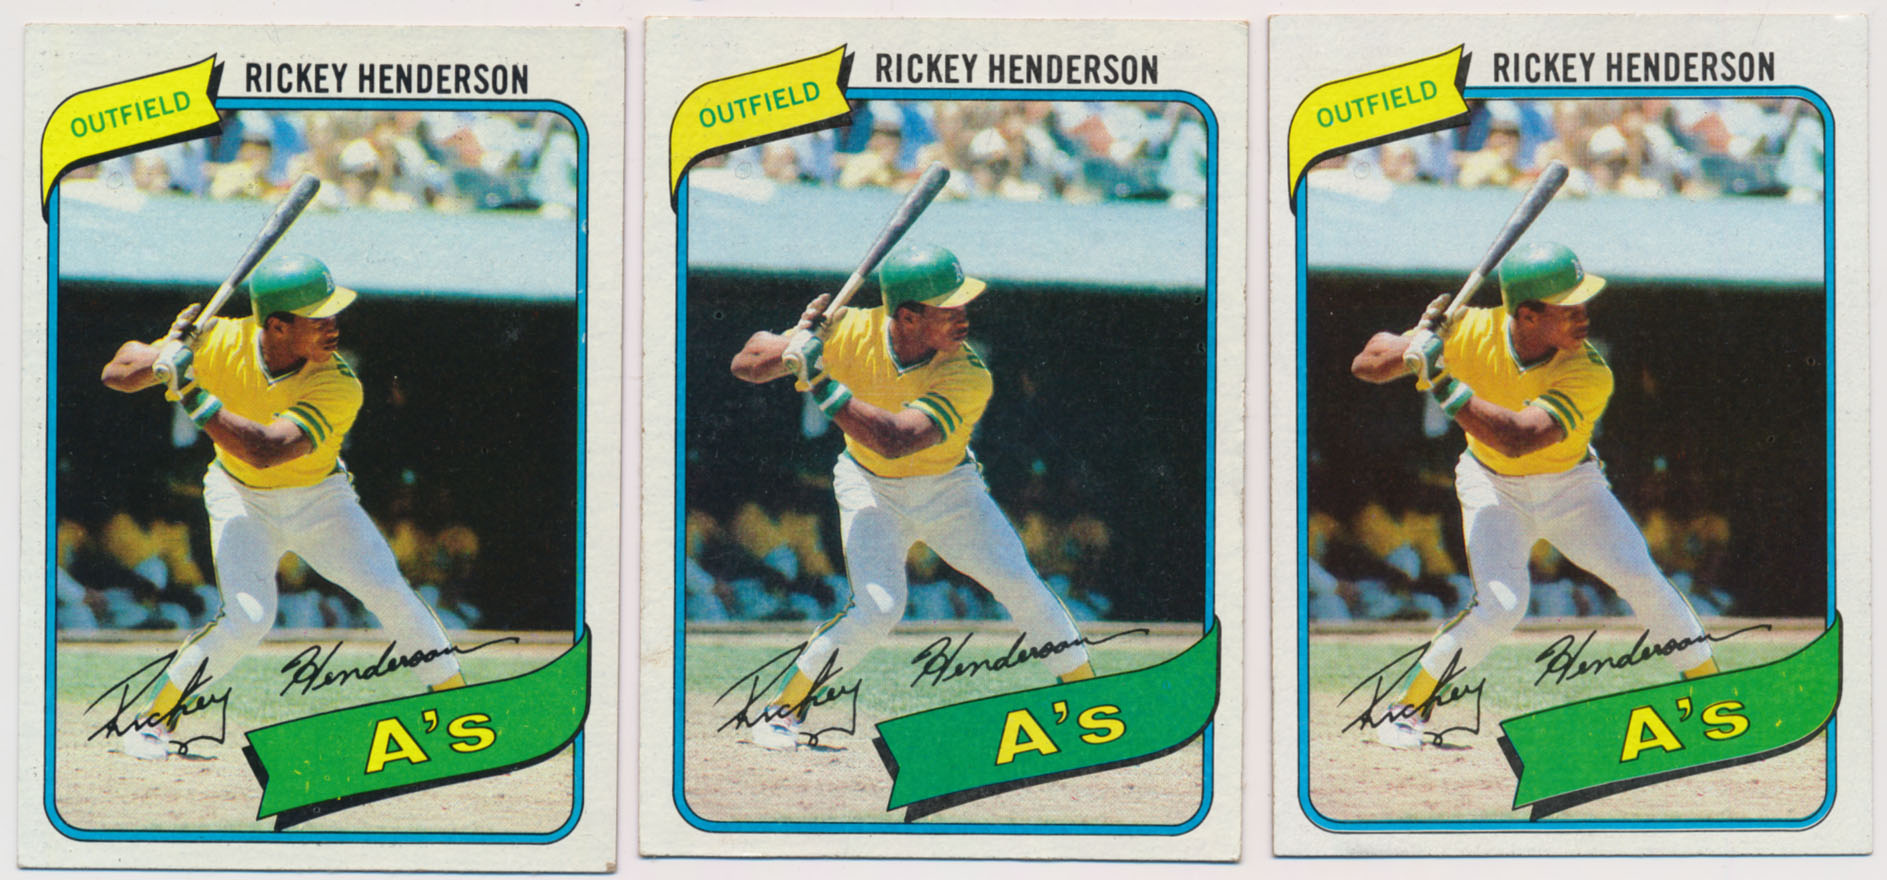 Lot #1009 1980 Topps # 482 R. Henderson RC (lot of 3) Cond: NM